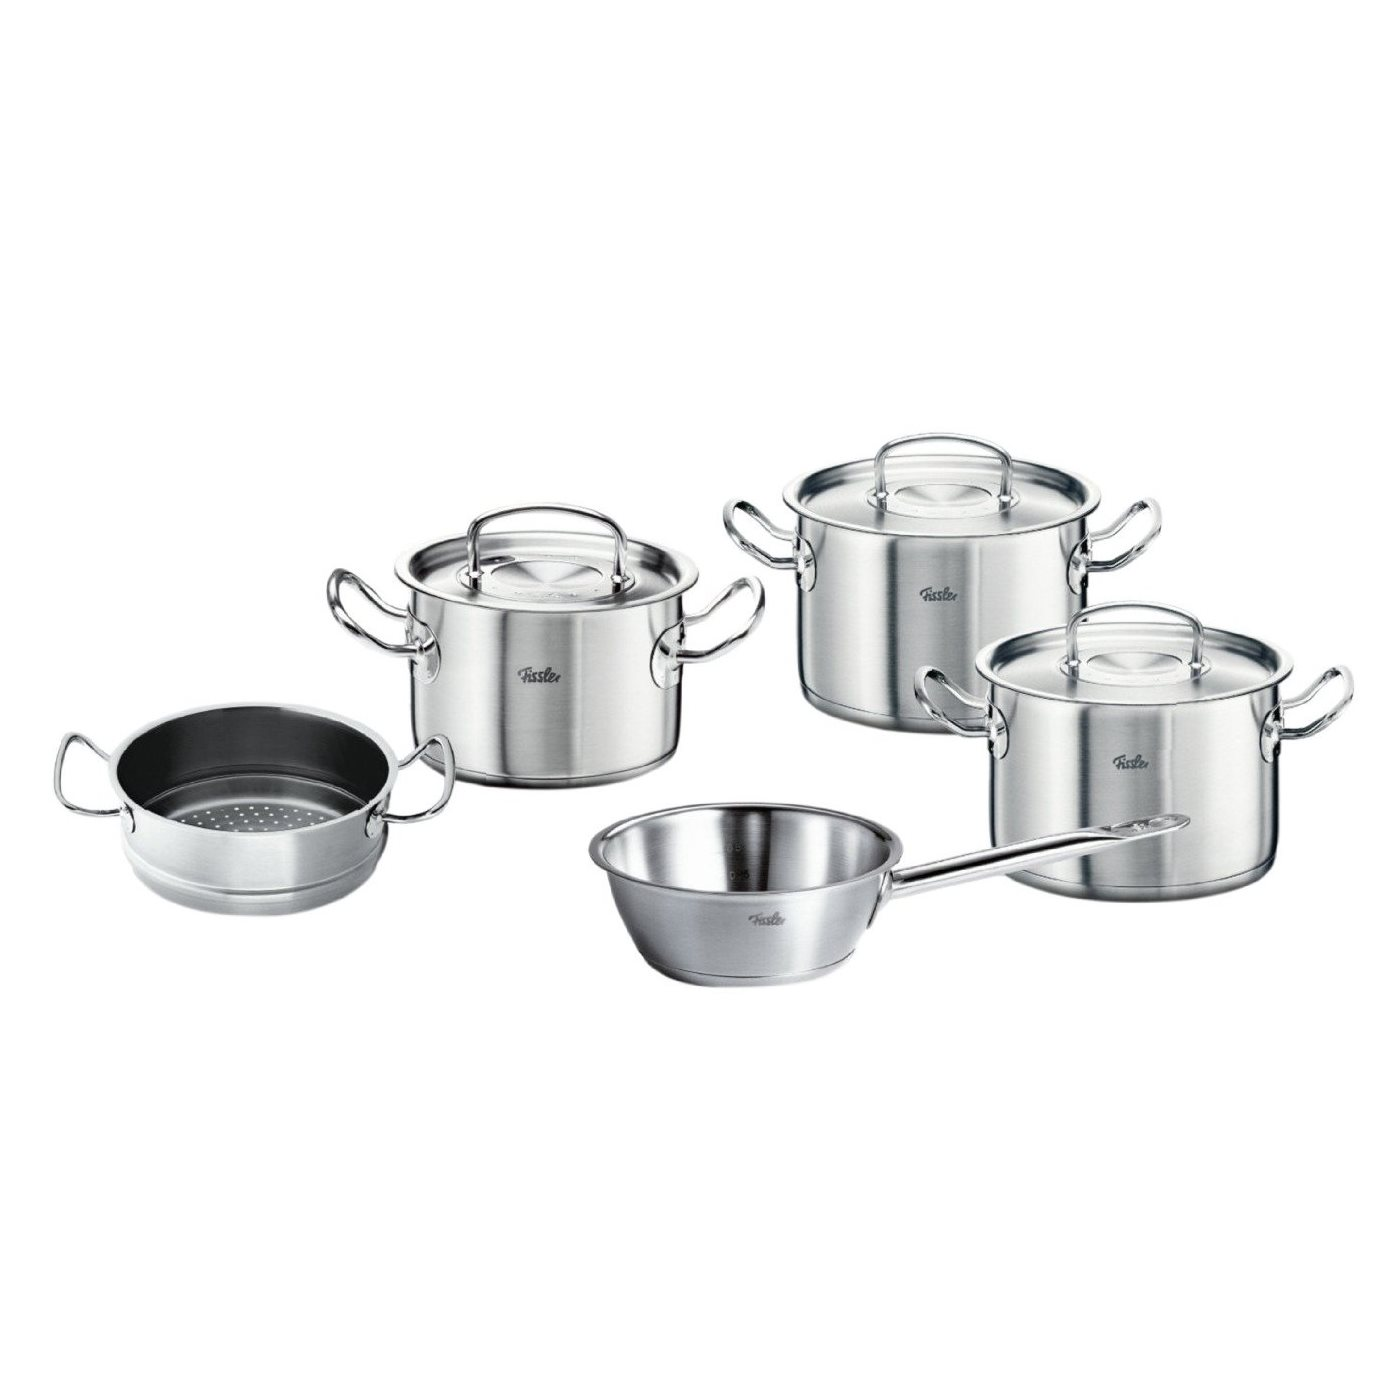 fissler original profi collection topfset 5 teilig mit d mpfeinsatz und sauteuse ebay. Black Bedroom Furniture Sets. Home Design Ideas